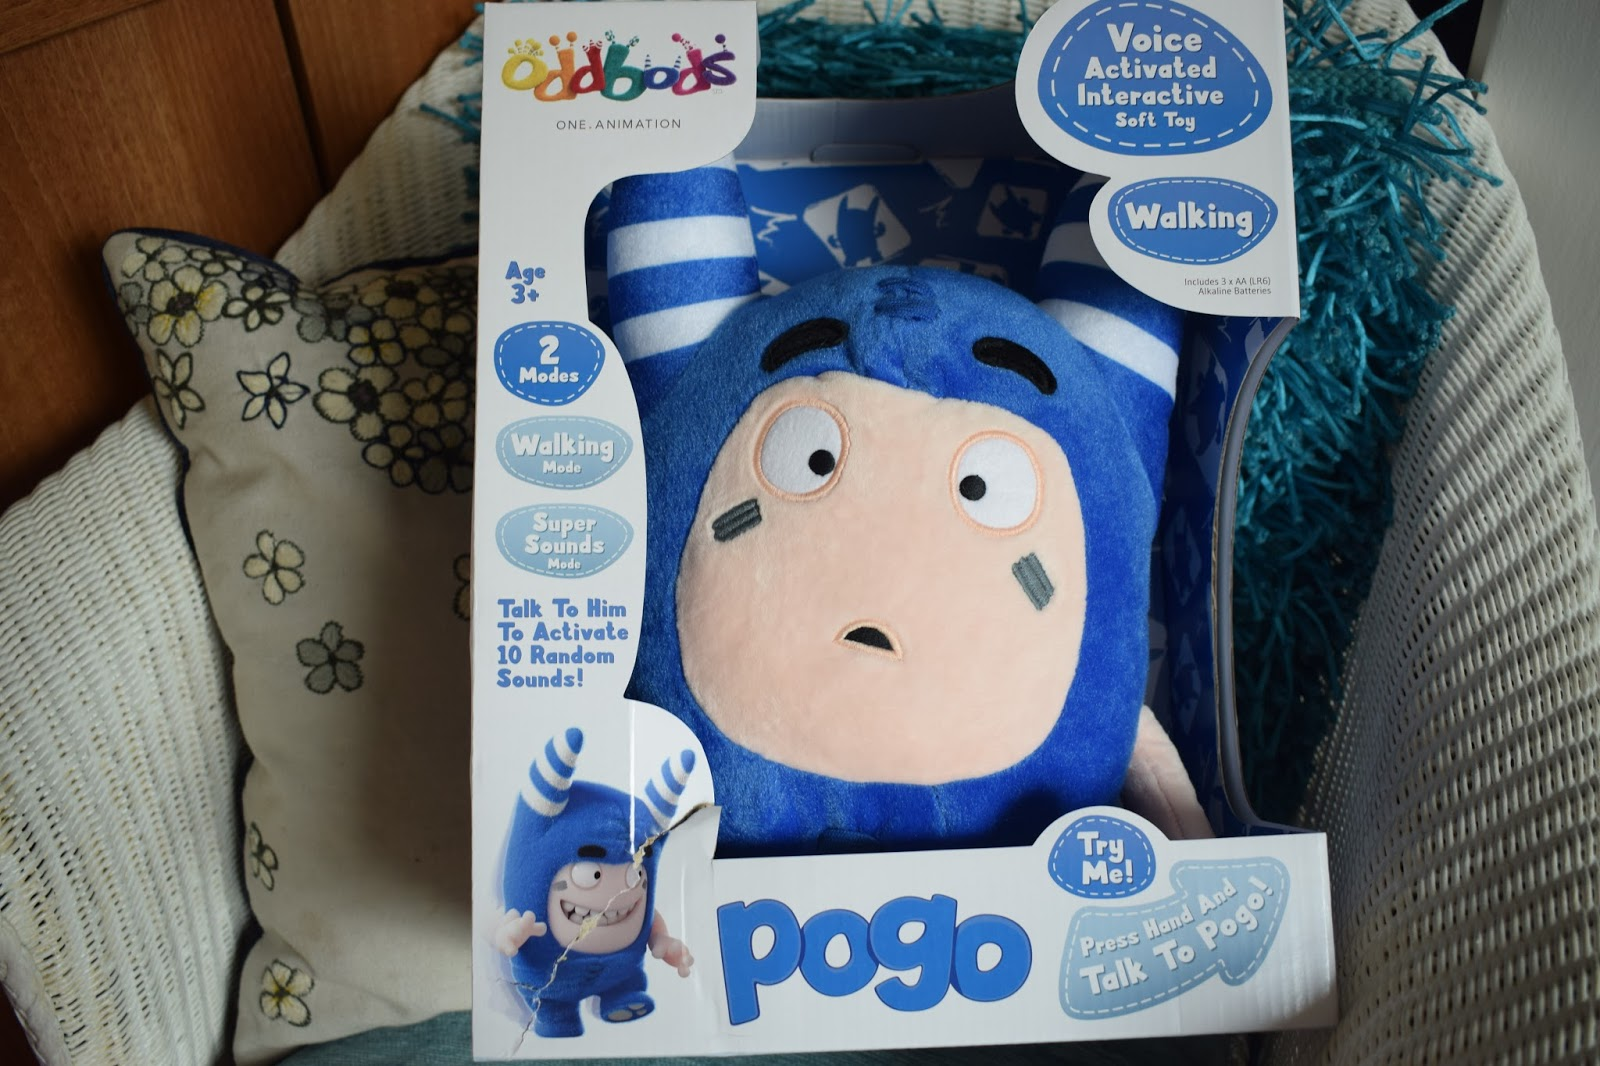 Voice activated Walking Pogo - Oddbods - Golden Bear Toys